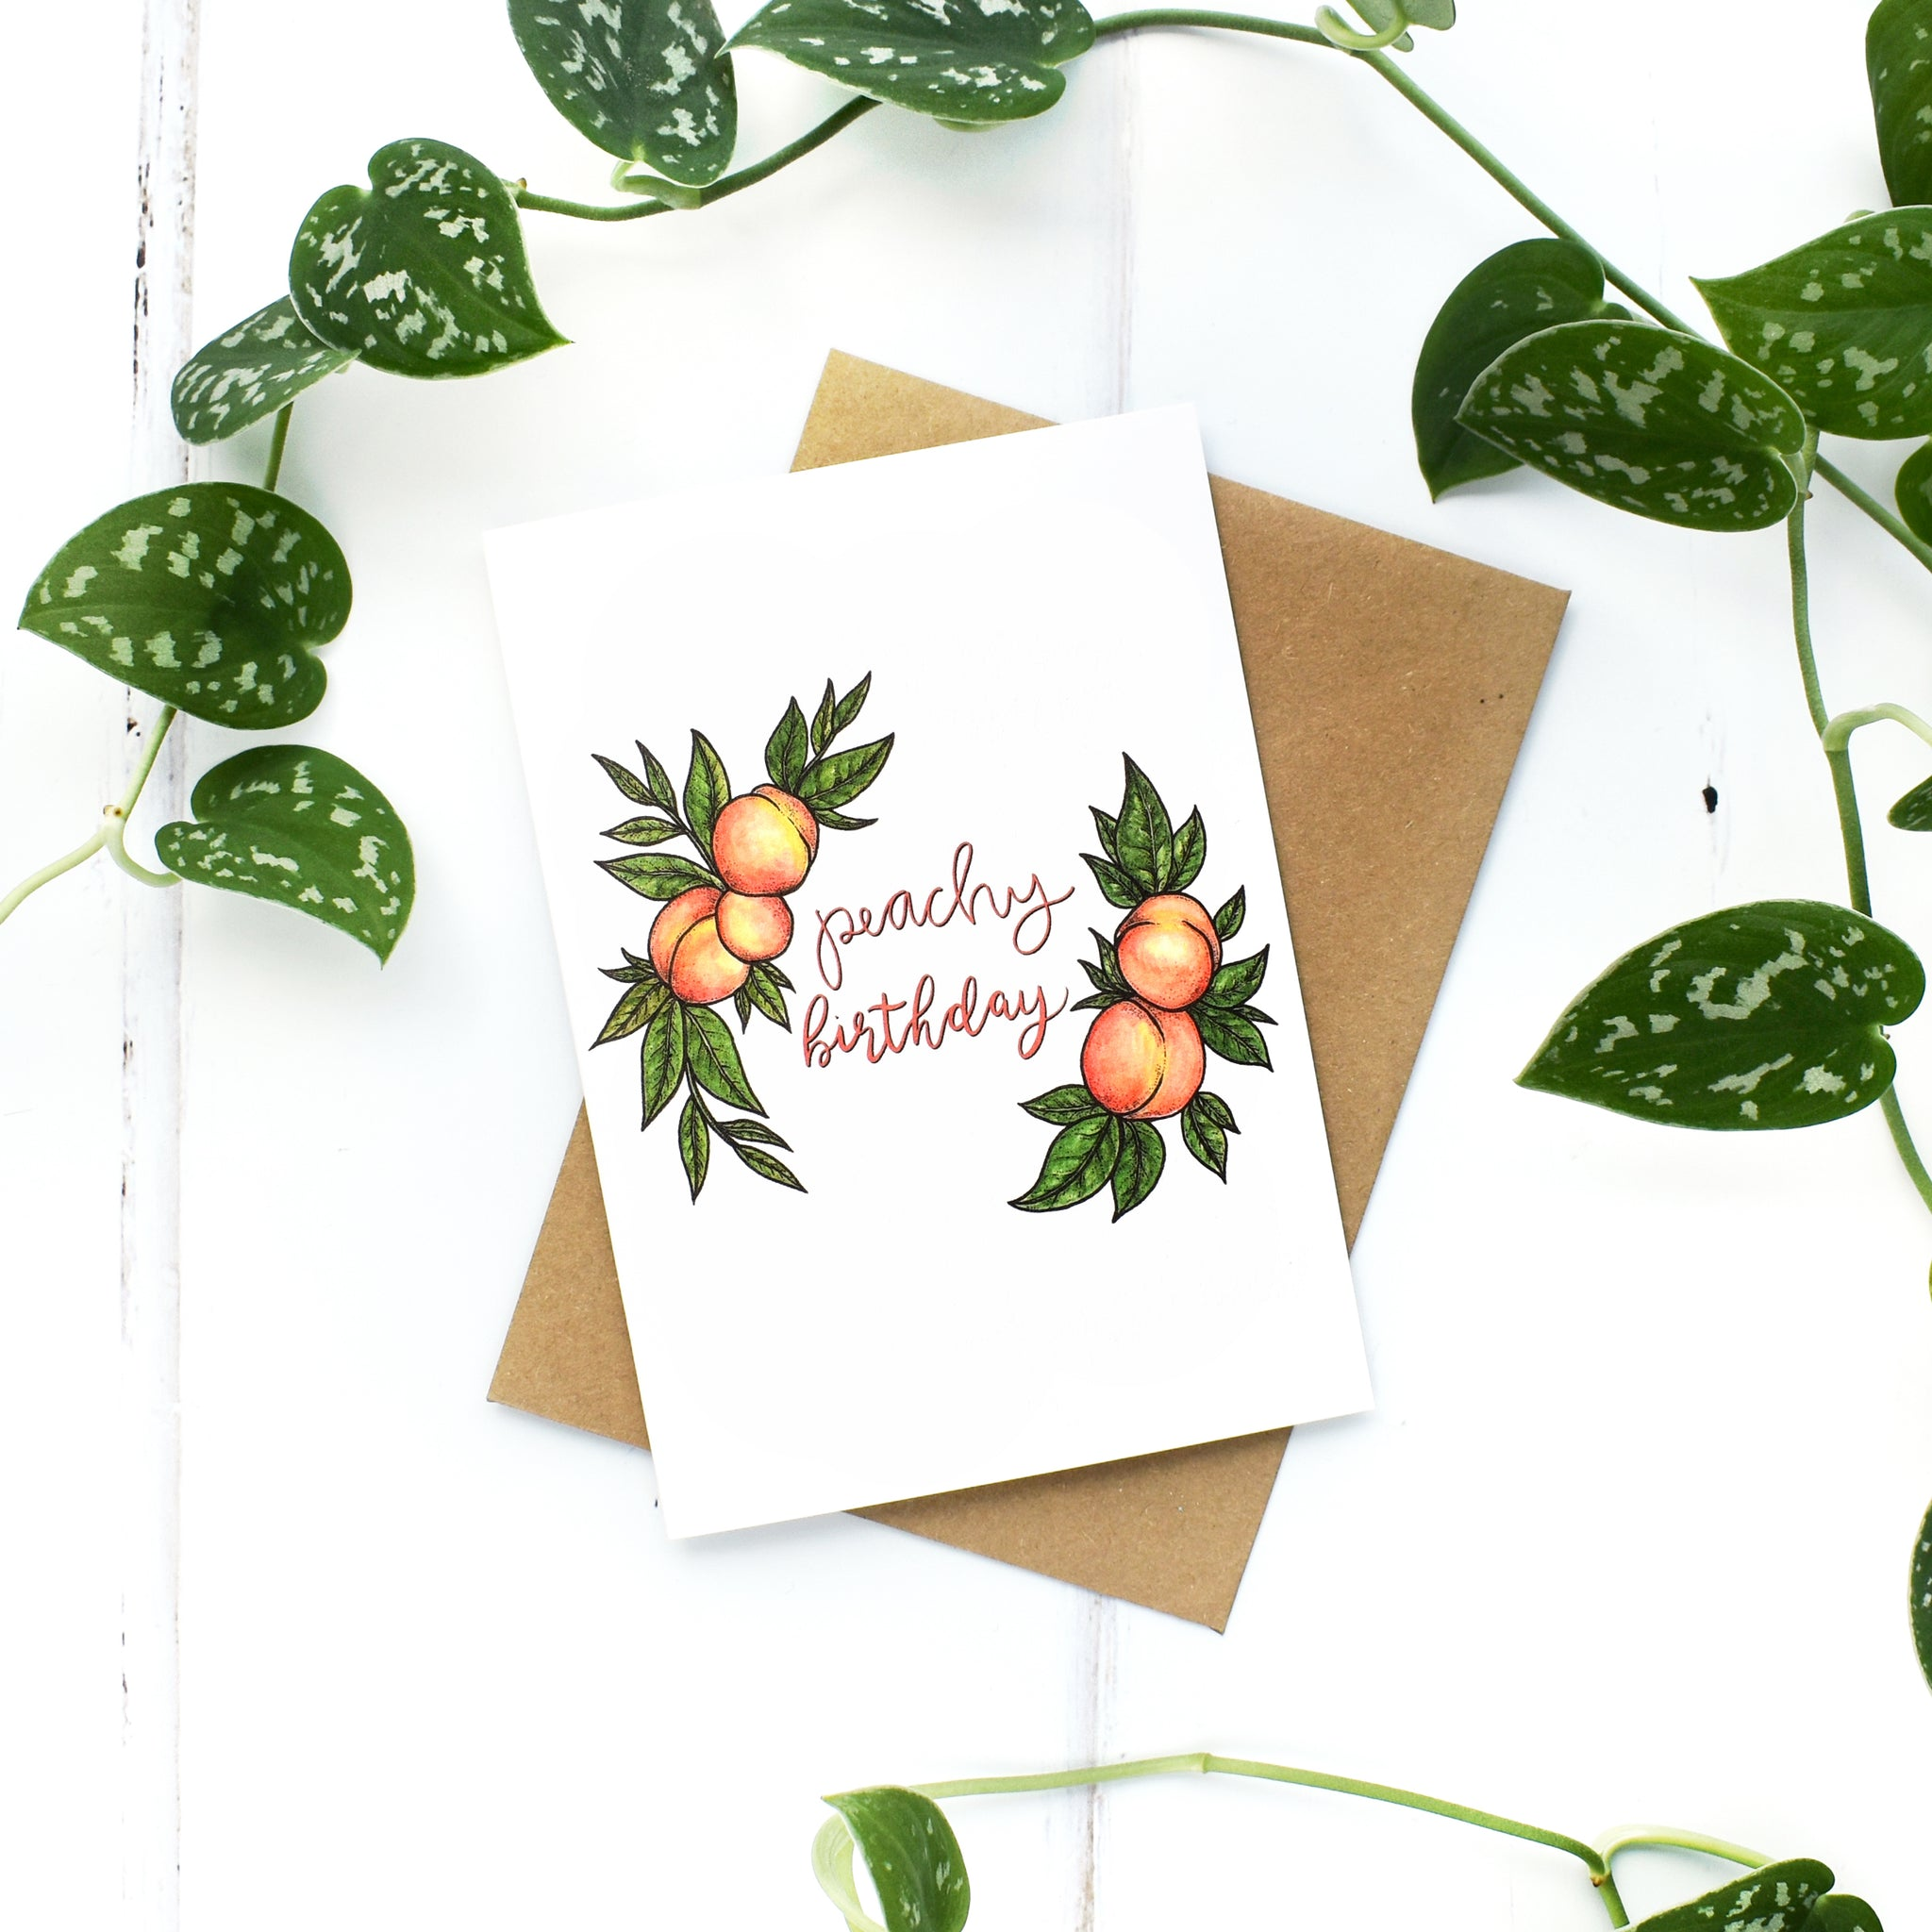 Peachy Birthday A6 Greeting Card, Blank Inside